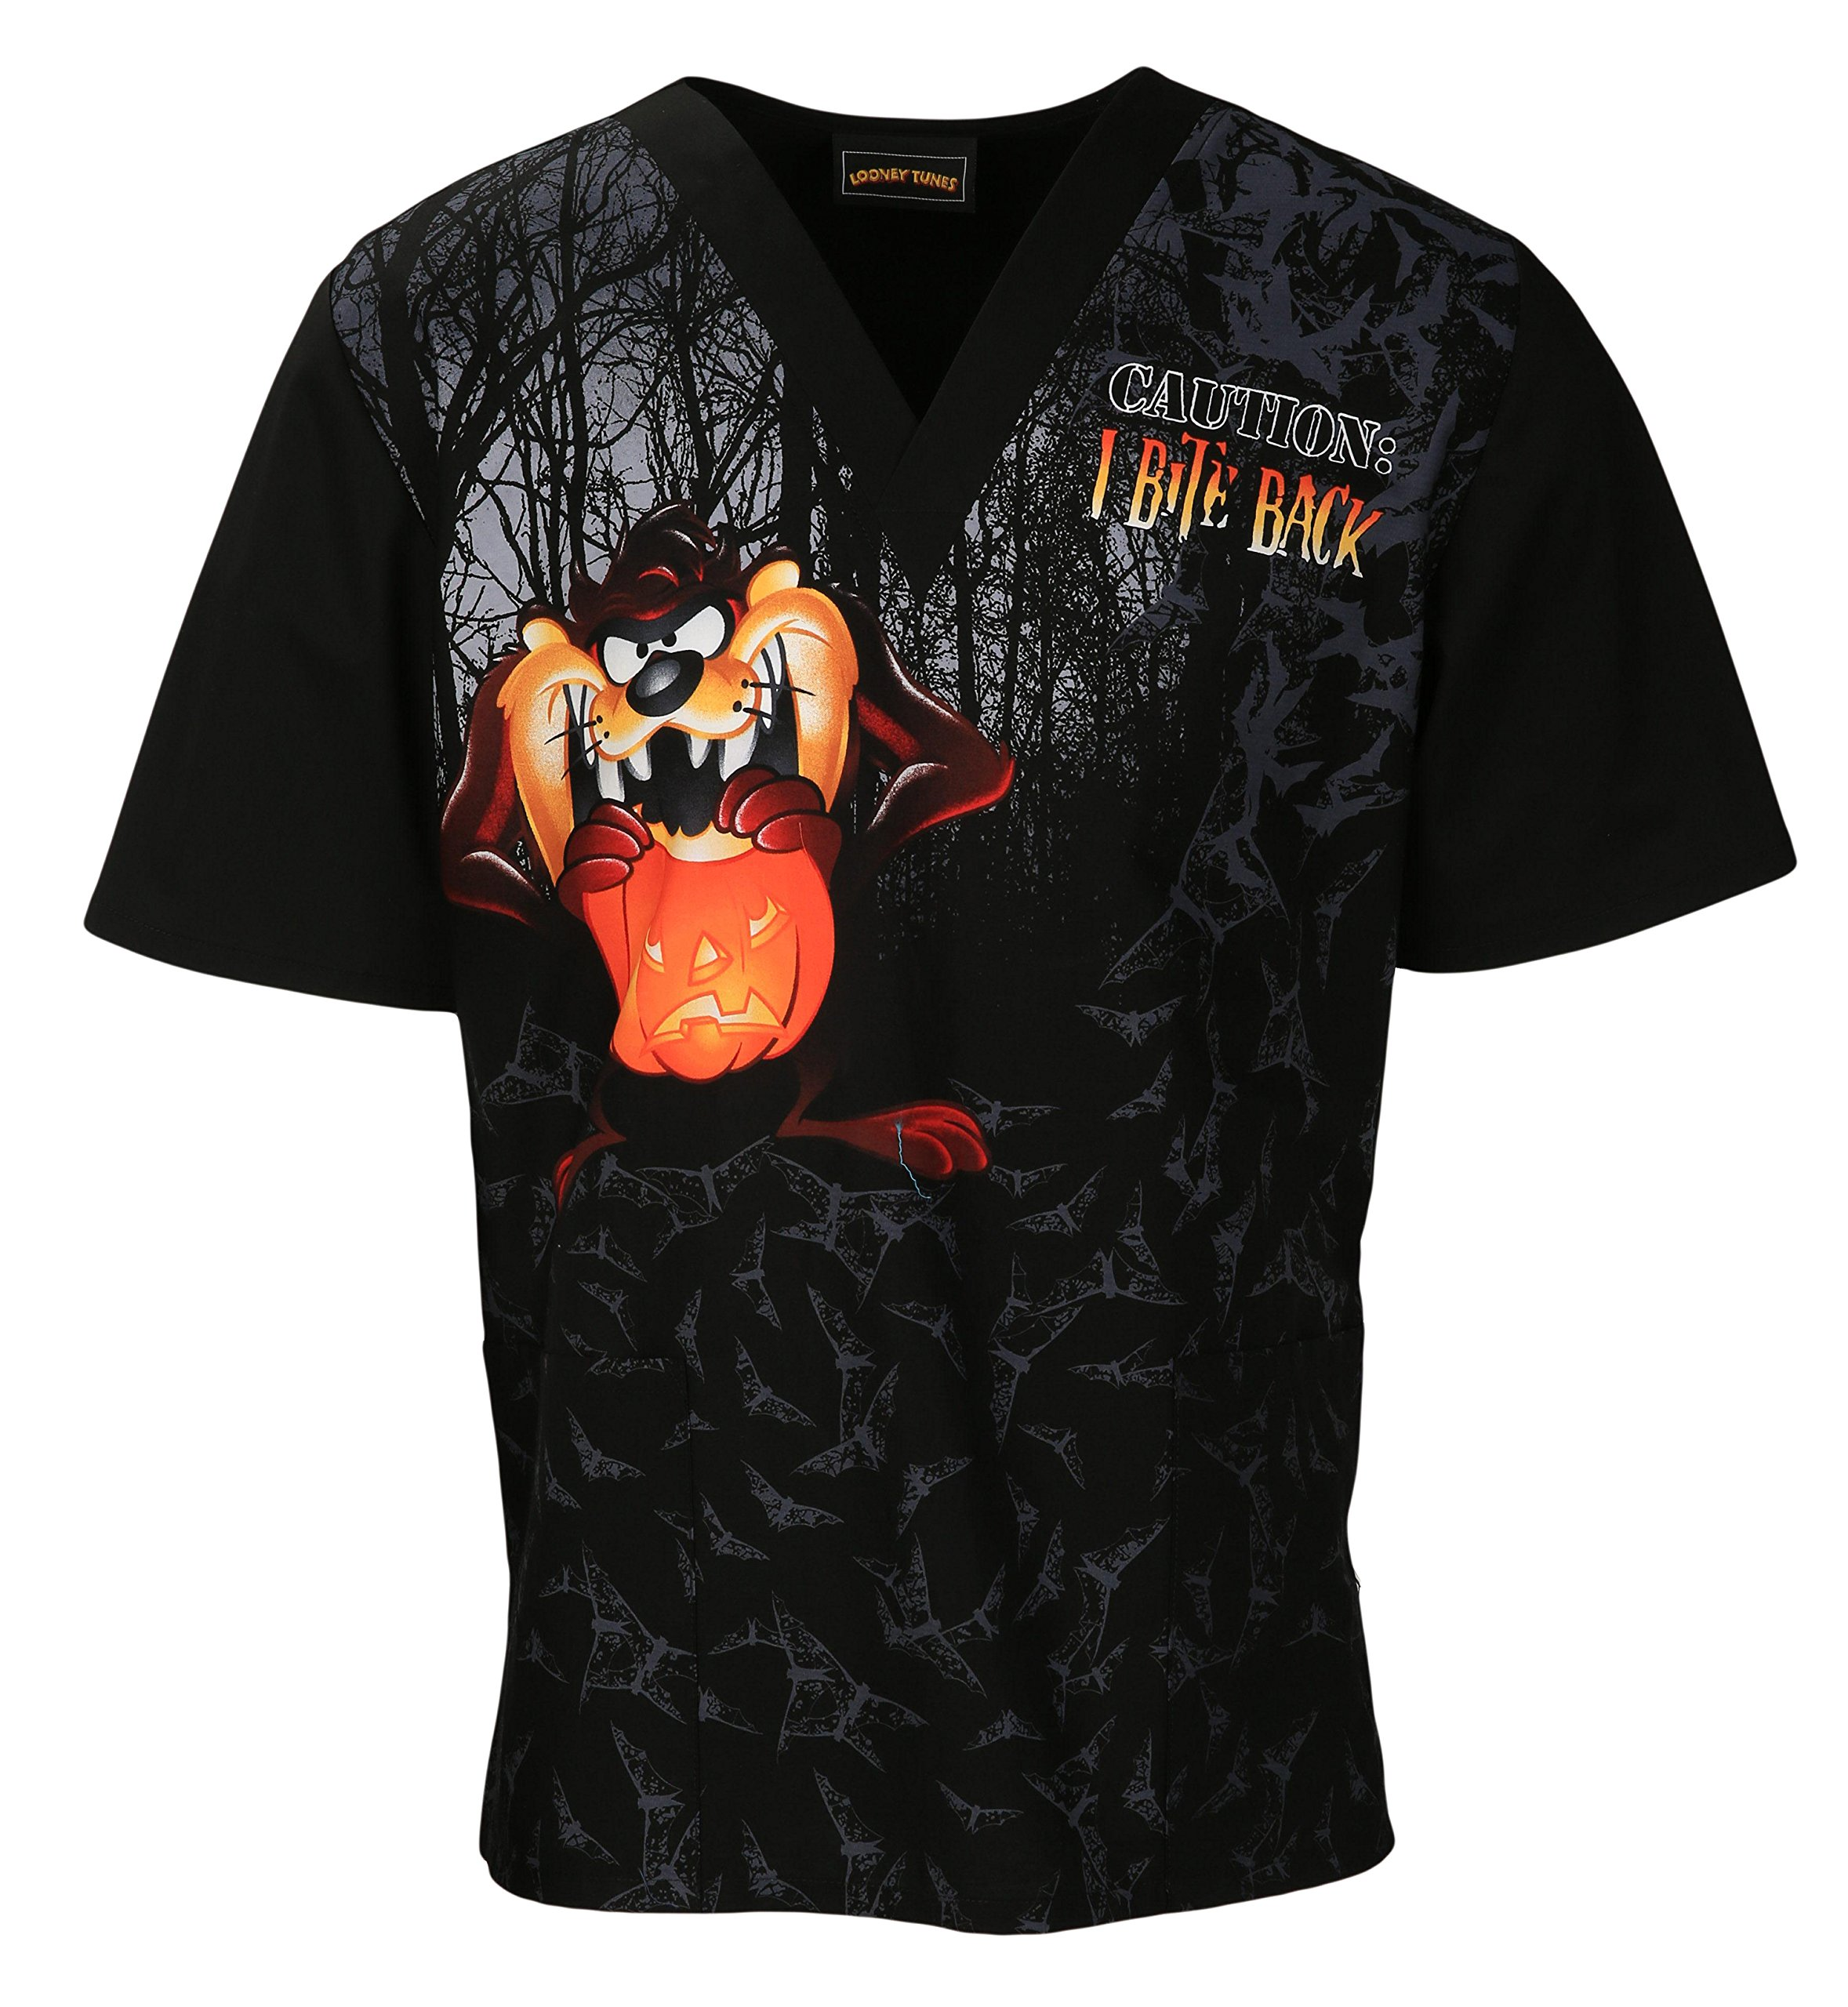 Tooniforms Unisex V-Neck Short Sleeve Top_Taz-O-Lantern_Medium by Tooniforms